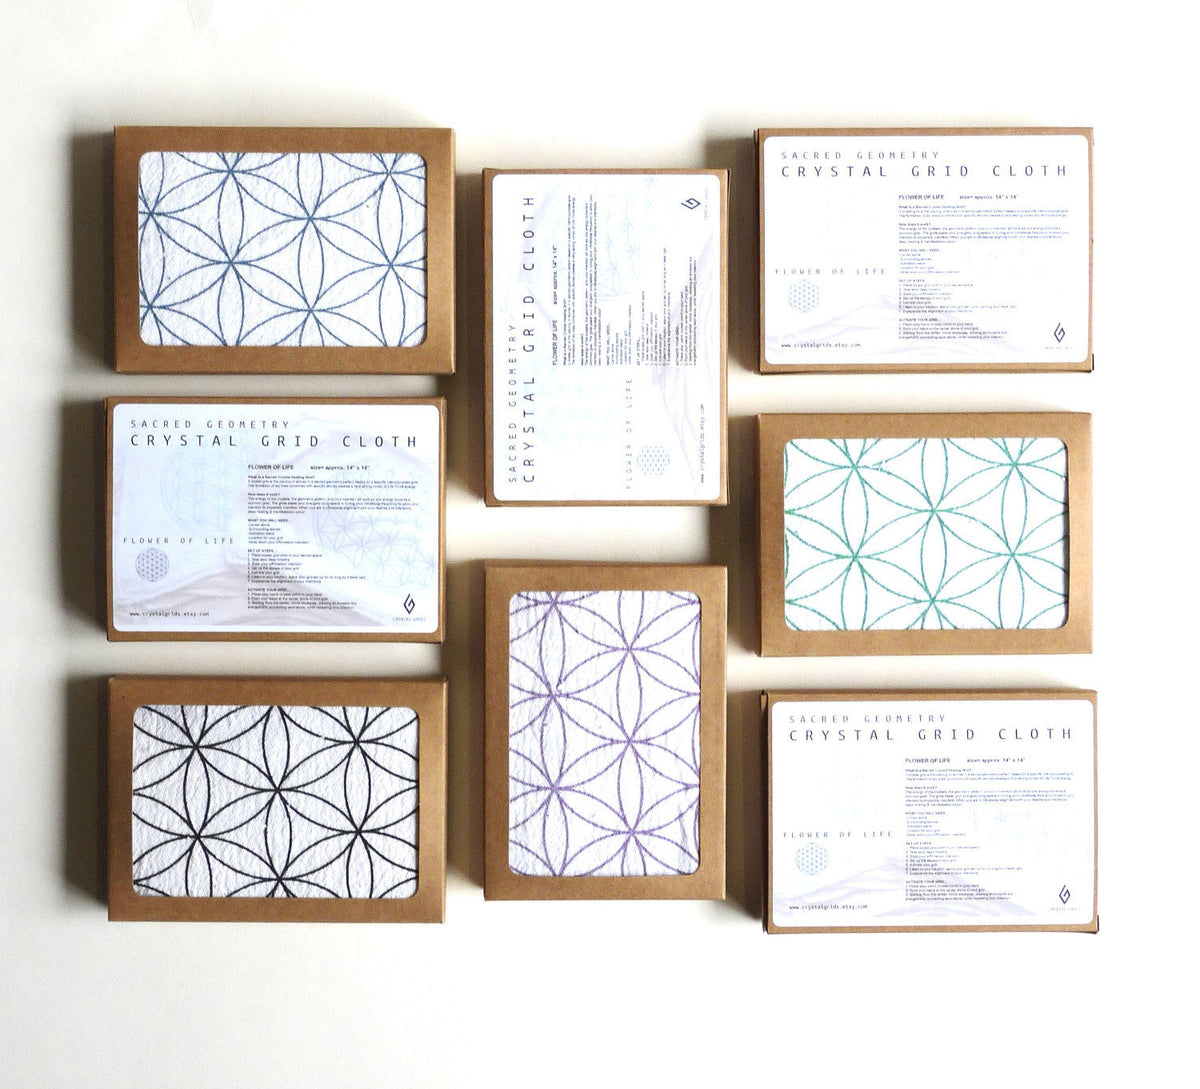 WHOLESALE - CRYSTAL GRID CLOTHS